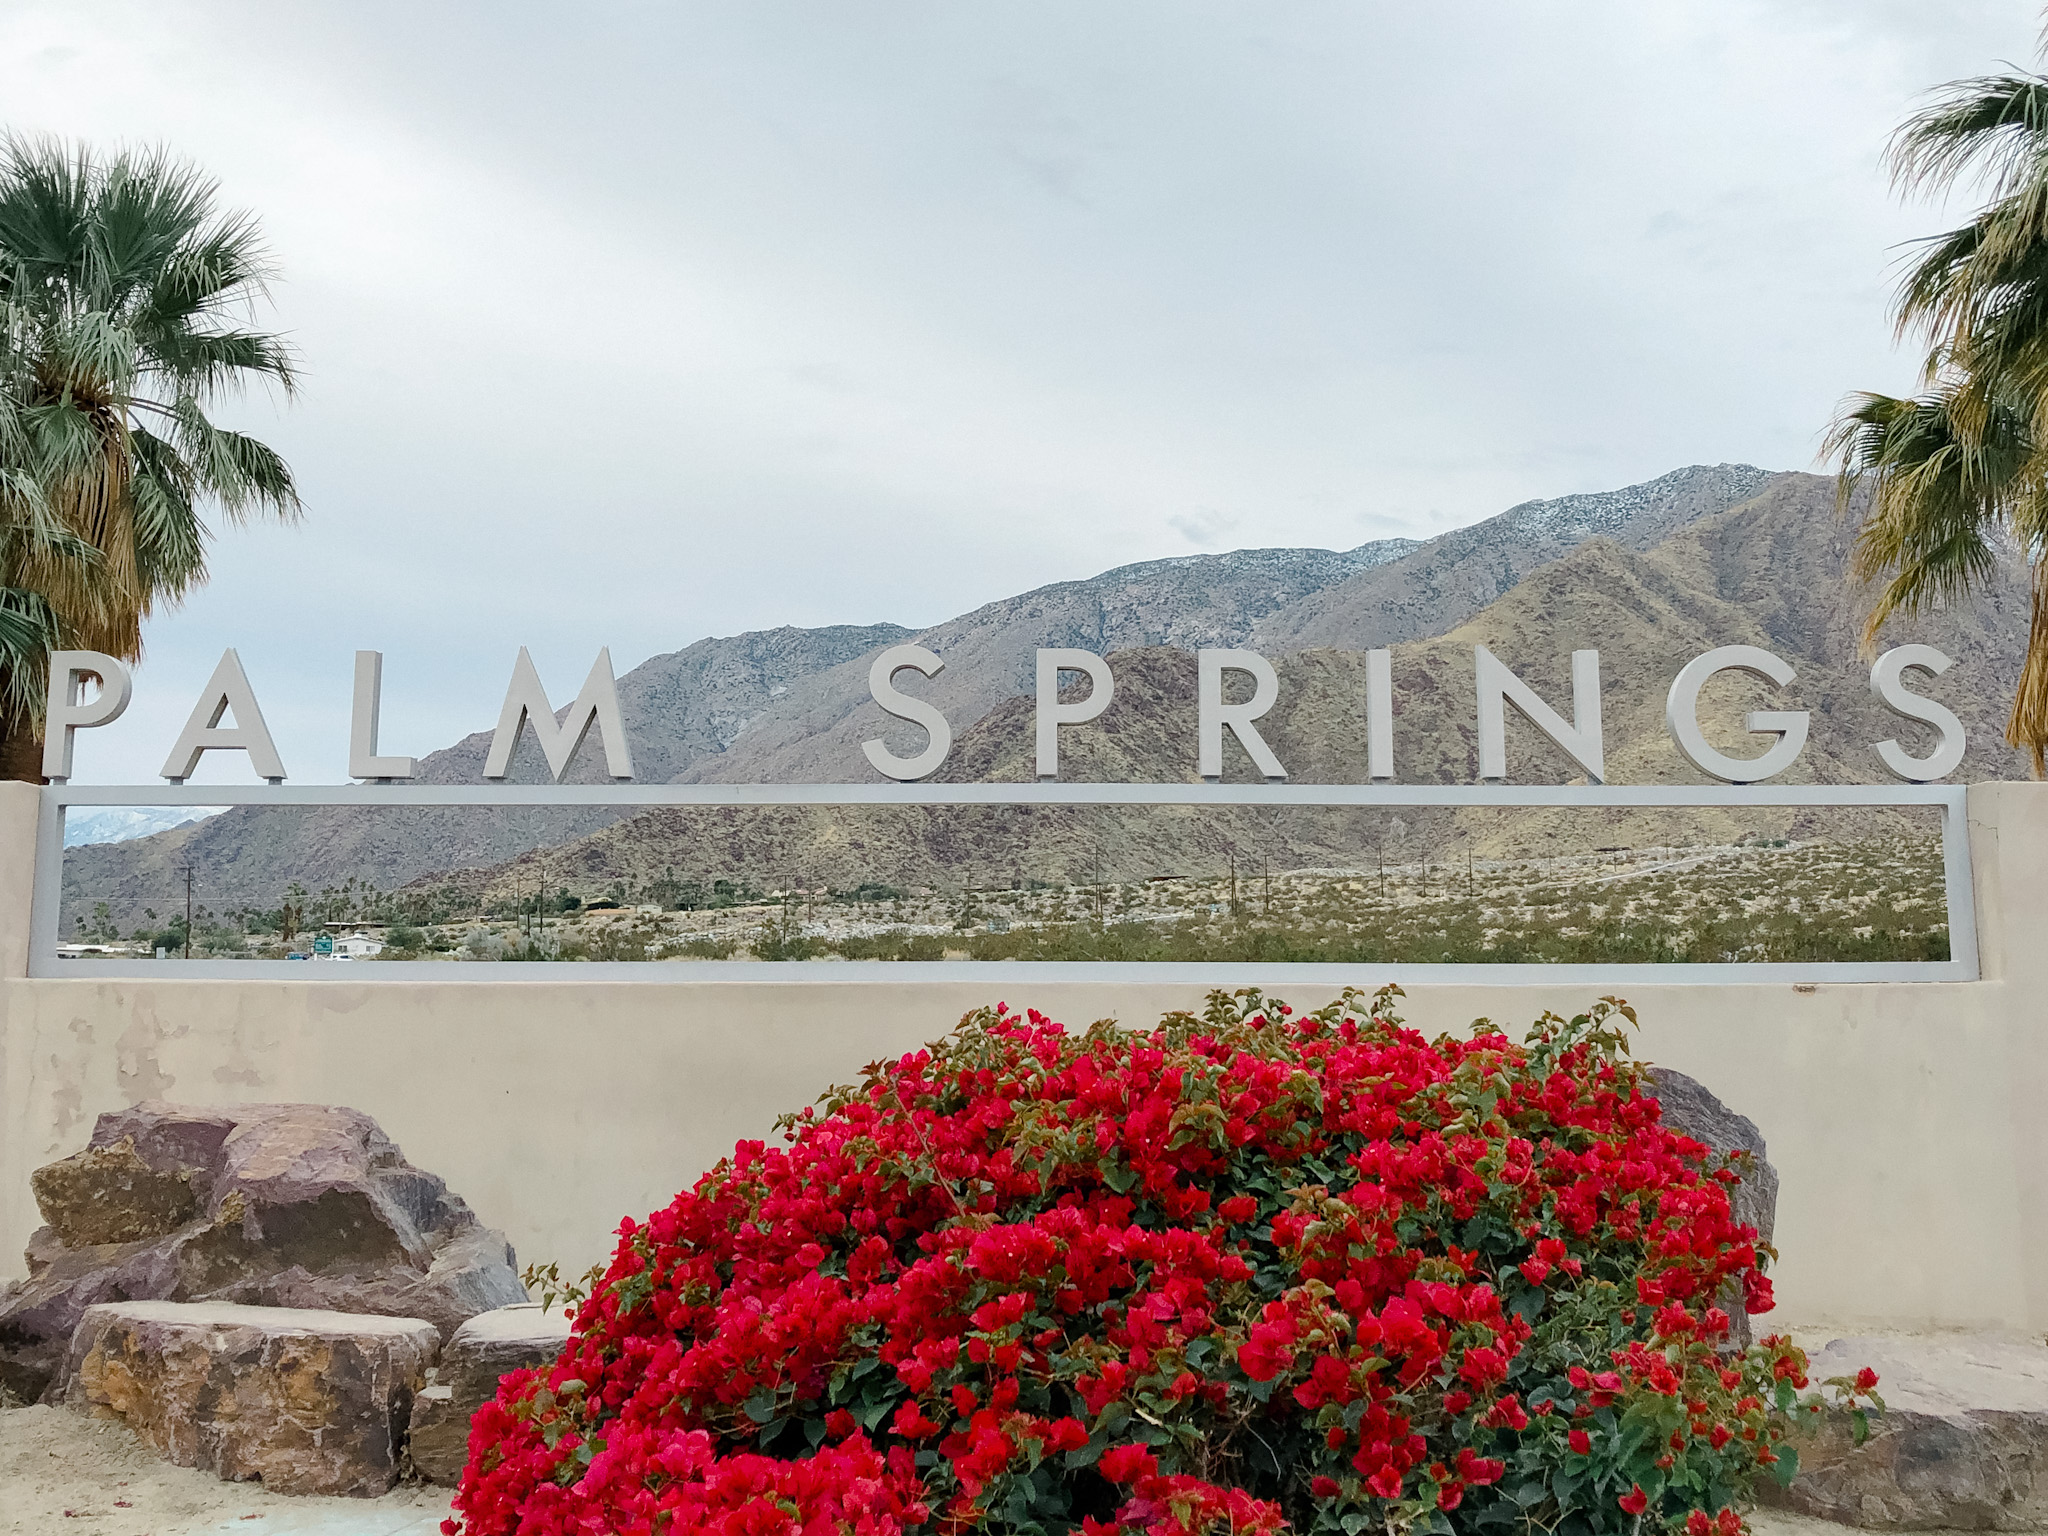 where is the Palm Springs sign located?